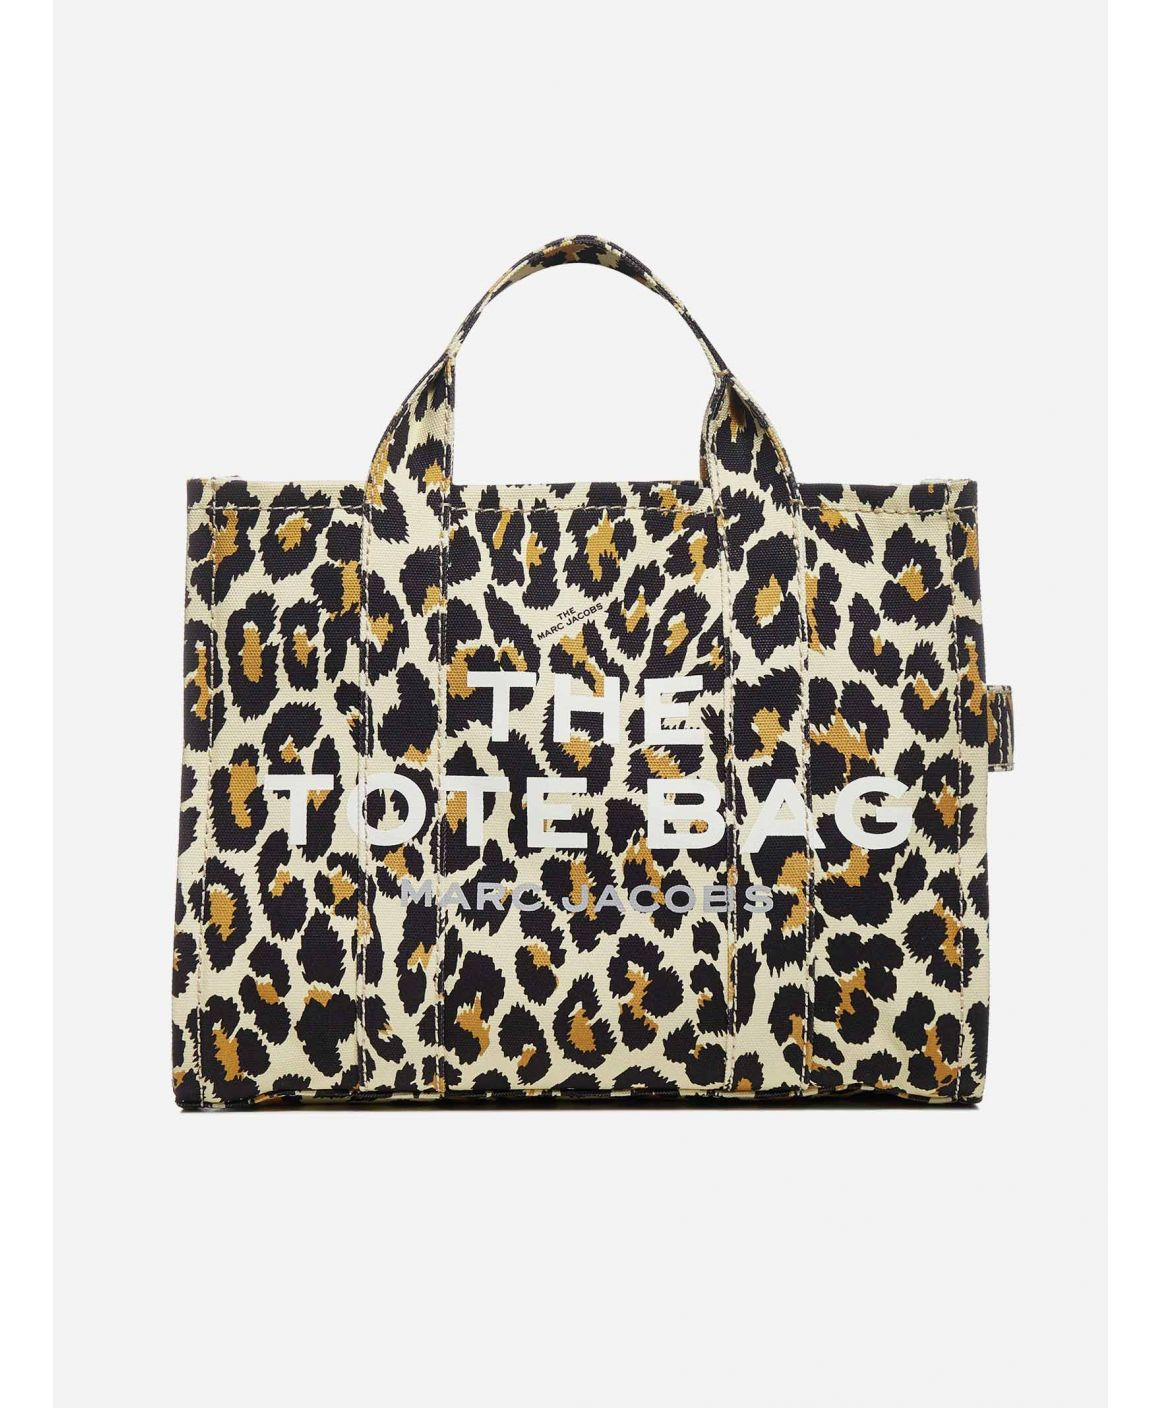 The Traveler Small leopard print canvas tote bag